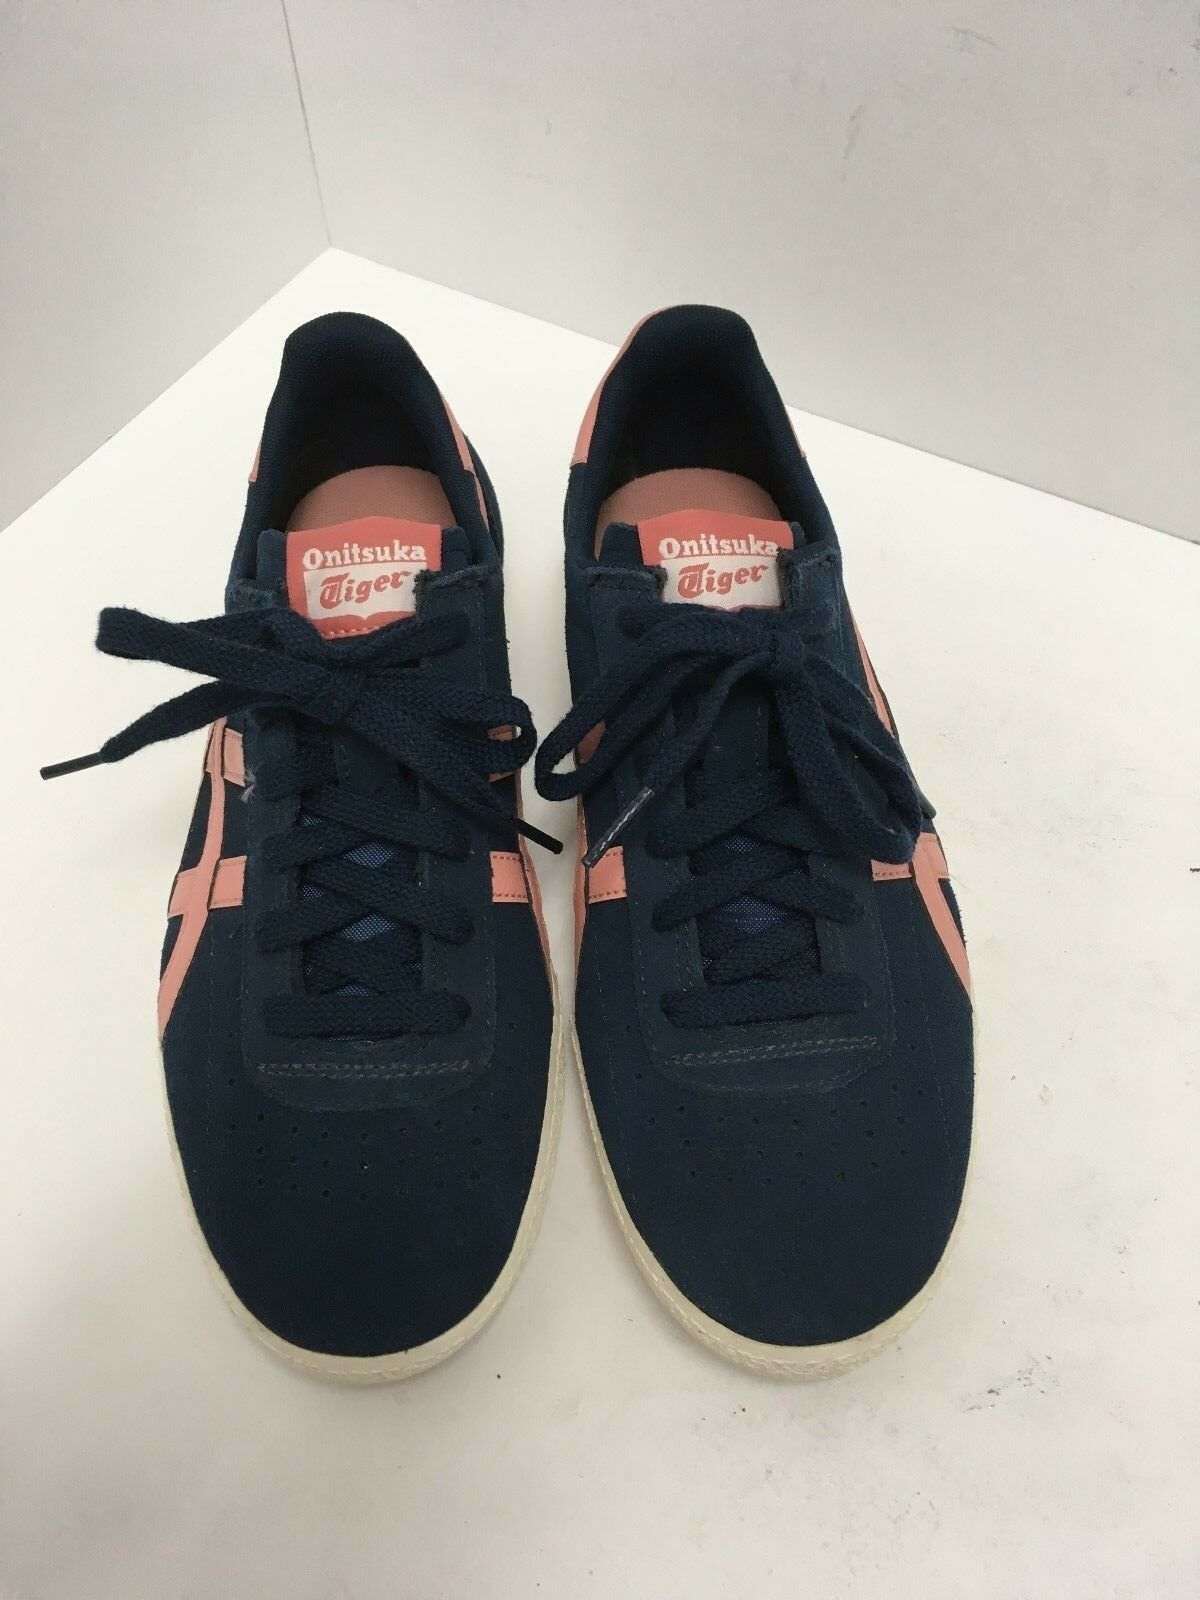 Asics Onitsuka Tiger Stripes Navy/Mauve Soccer Shoe Men's Comfortable The latest discount shoes for men and women